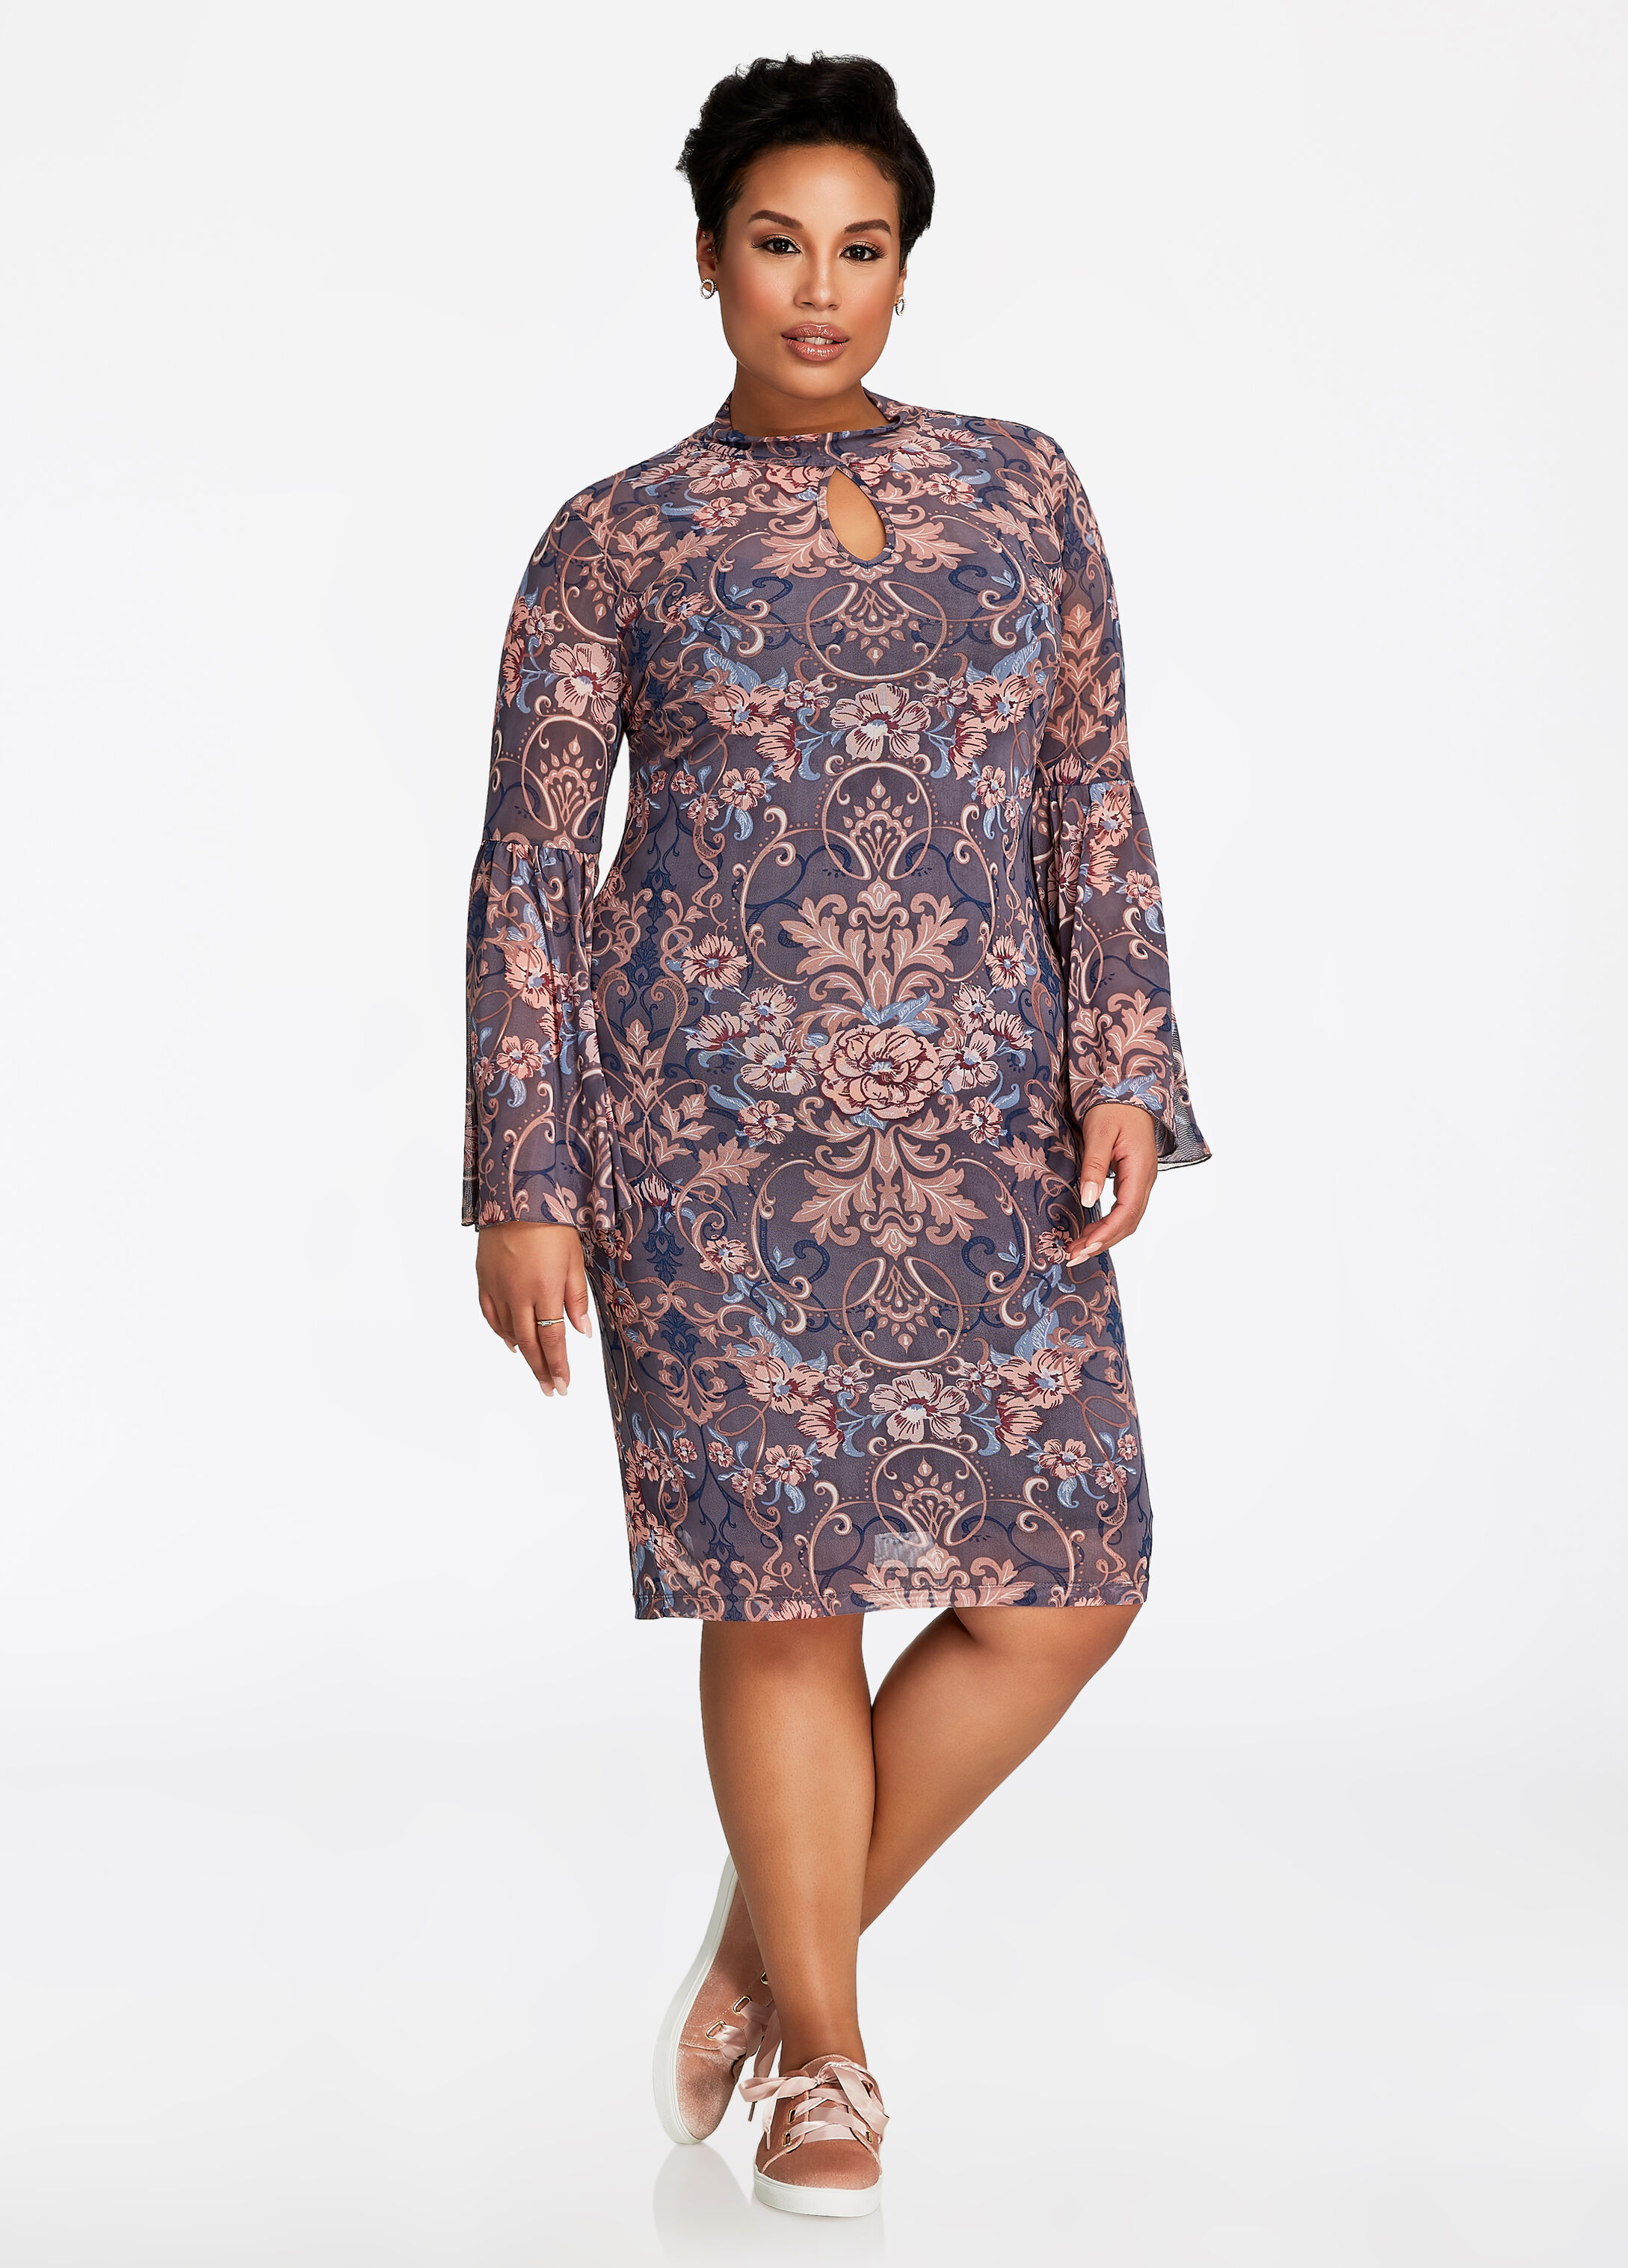 Mockneck Keyhole Mesh Floral Dress